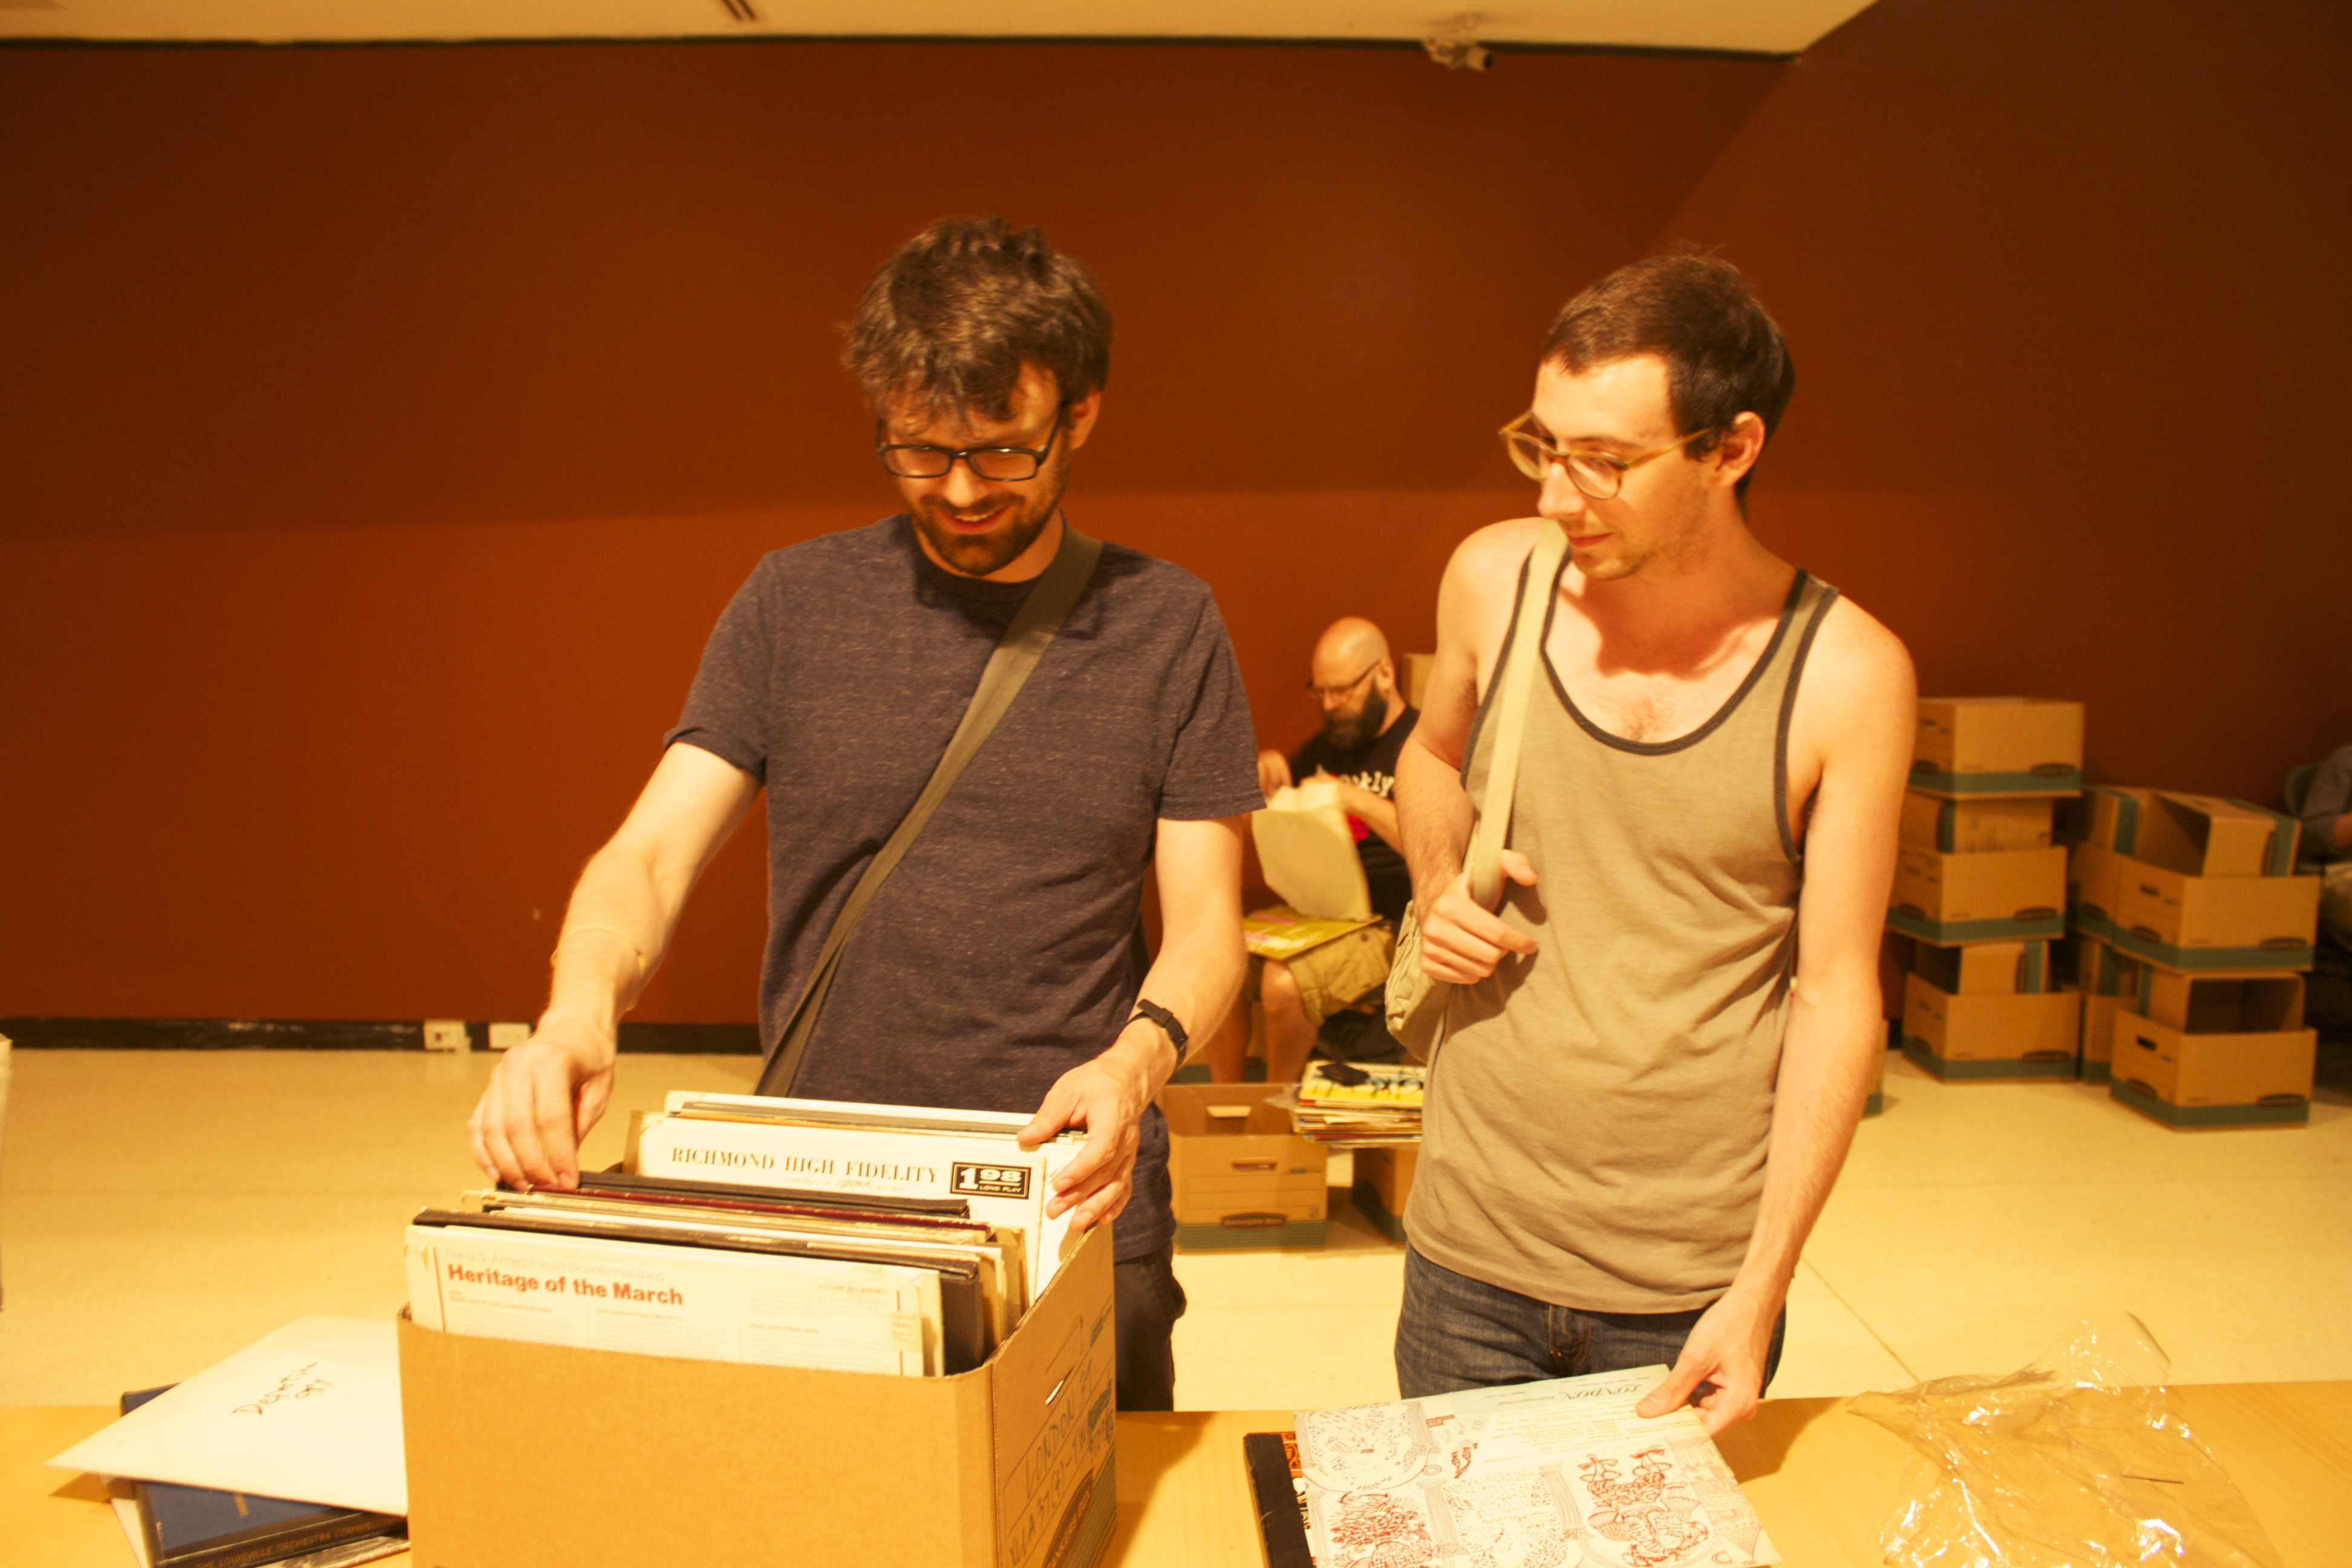 Matthew Gantt and Joe White flip through the stacks.